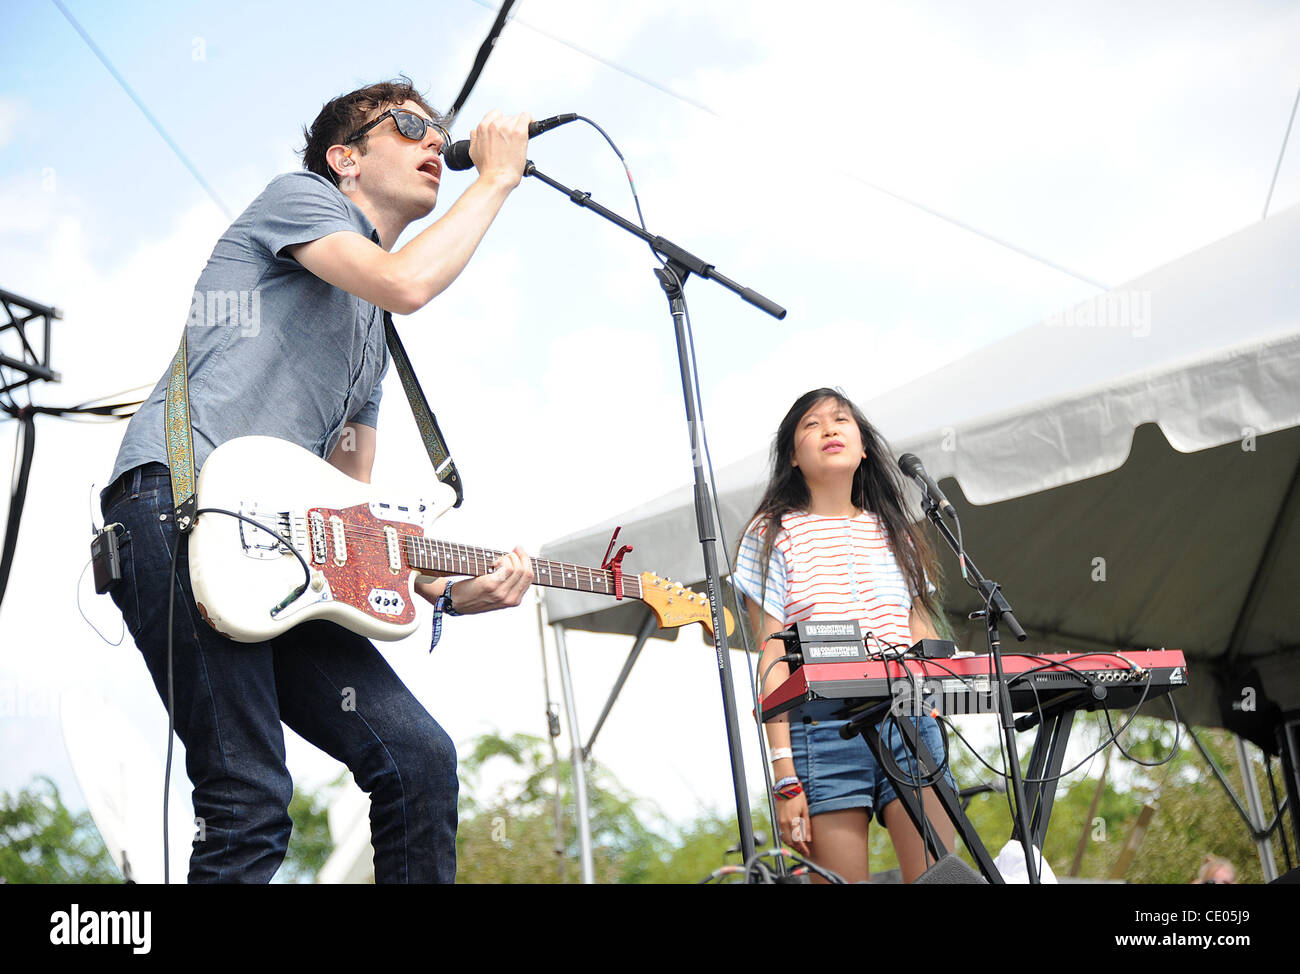 Aug 7, 2011 - Chicago, Illinois; USA - Musicians THE PAINS OF BEING PURE AT HEART performs live as part of the 20th - Stock Image